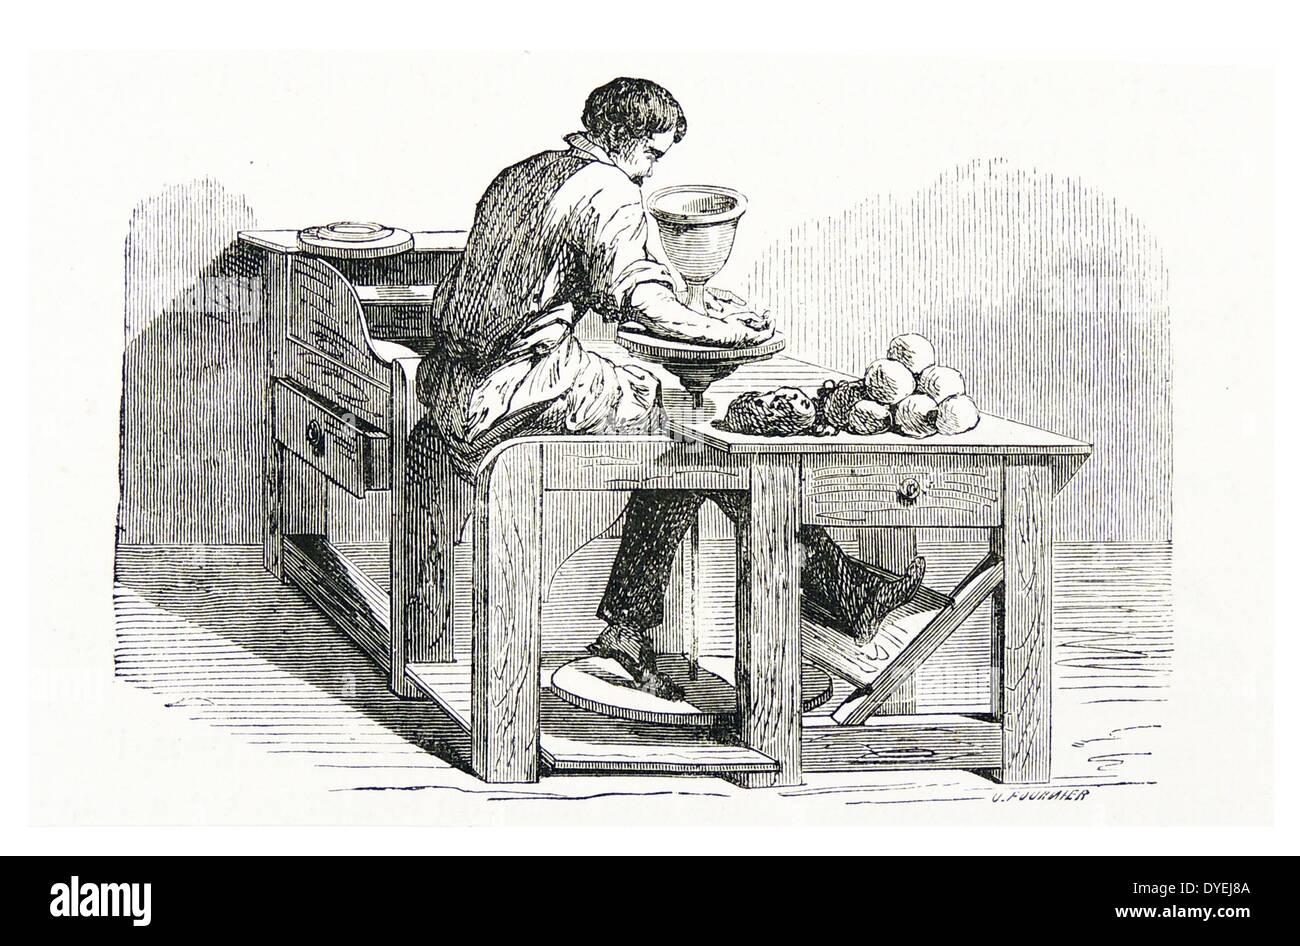 Potter at his wheel forming a vase. In front of him are balls of he can use as necessary. He rotates the wheel with his foot. - Stock Image